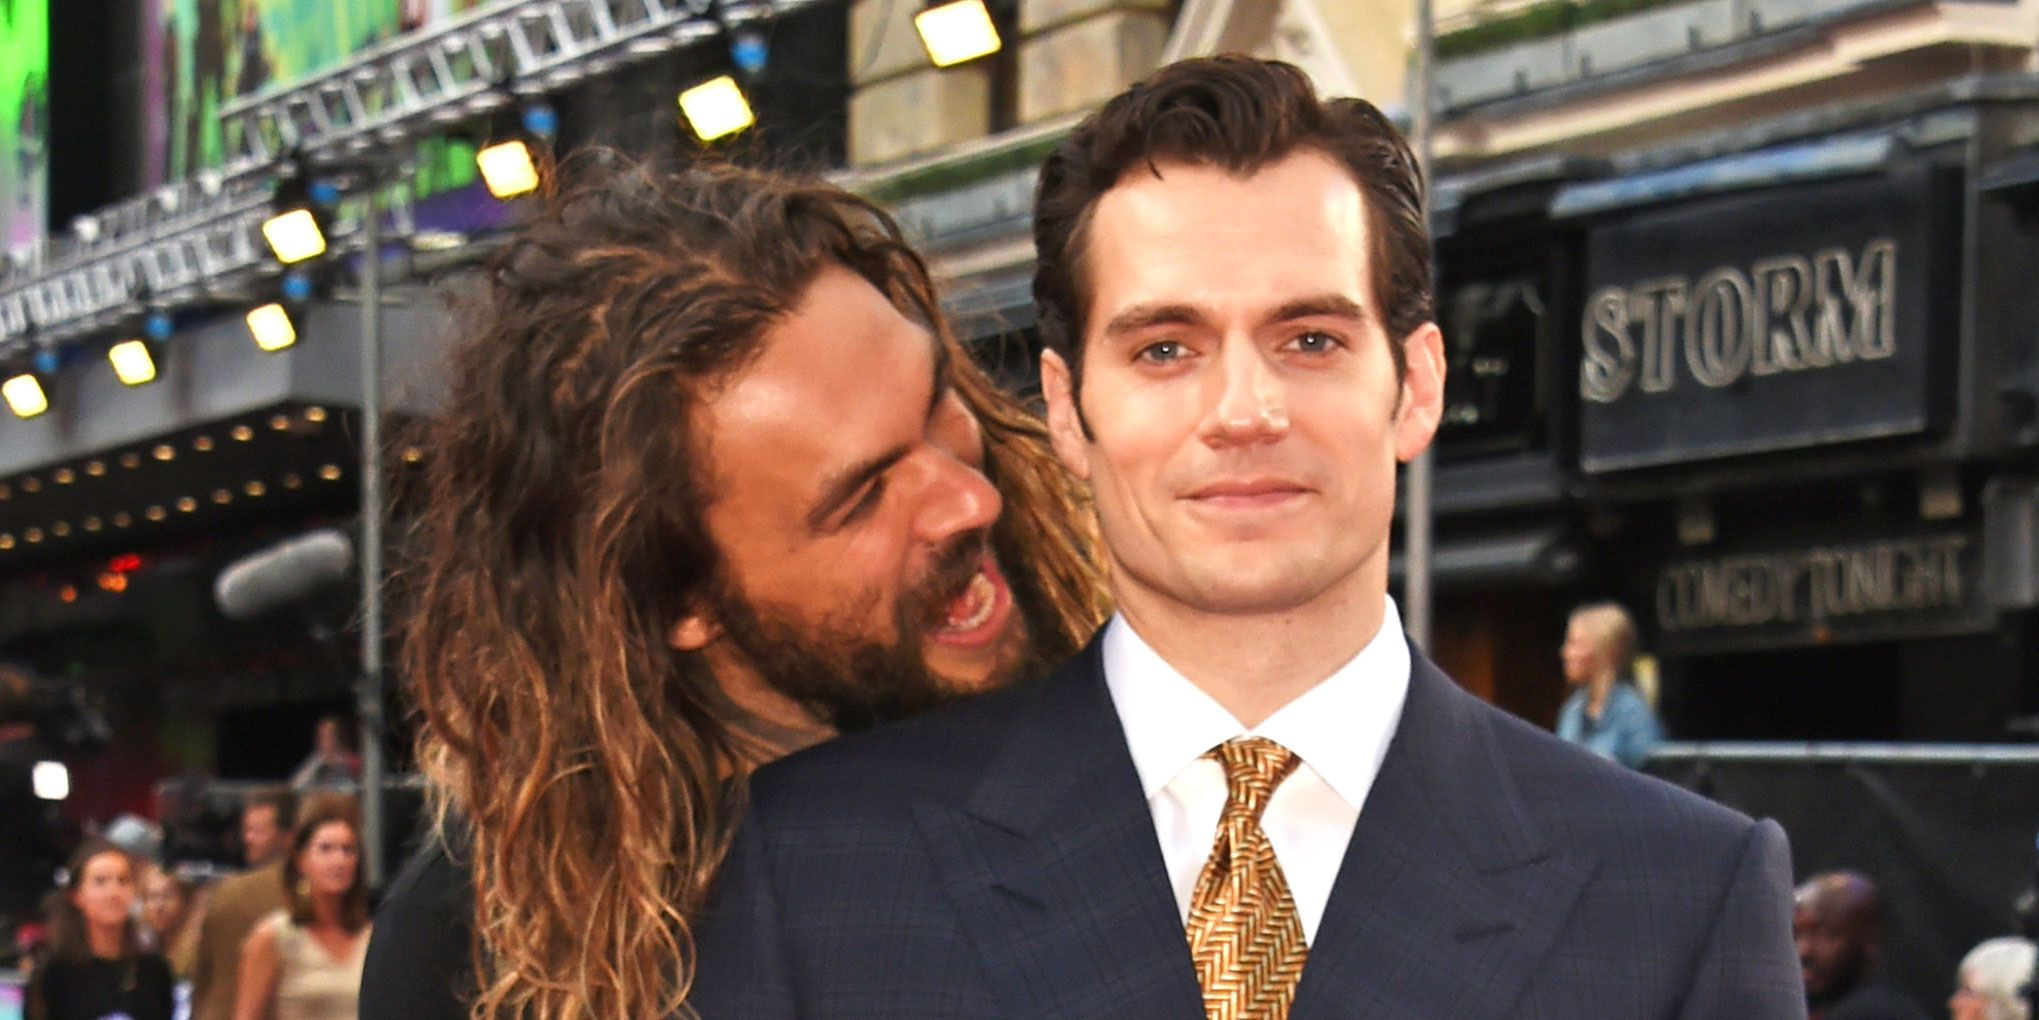 Jason Momoa, Henry Cavill at Suicide Squad premiere in London, 2016